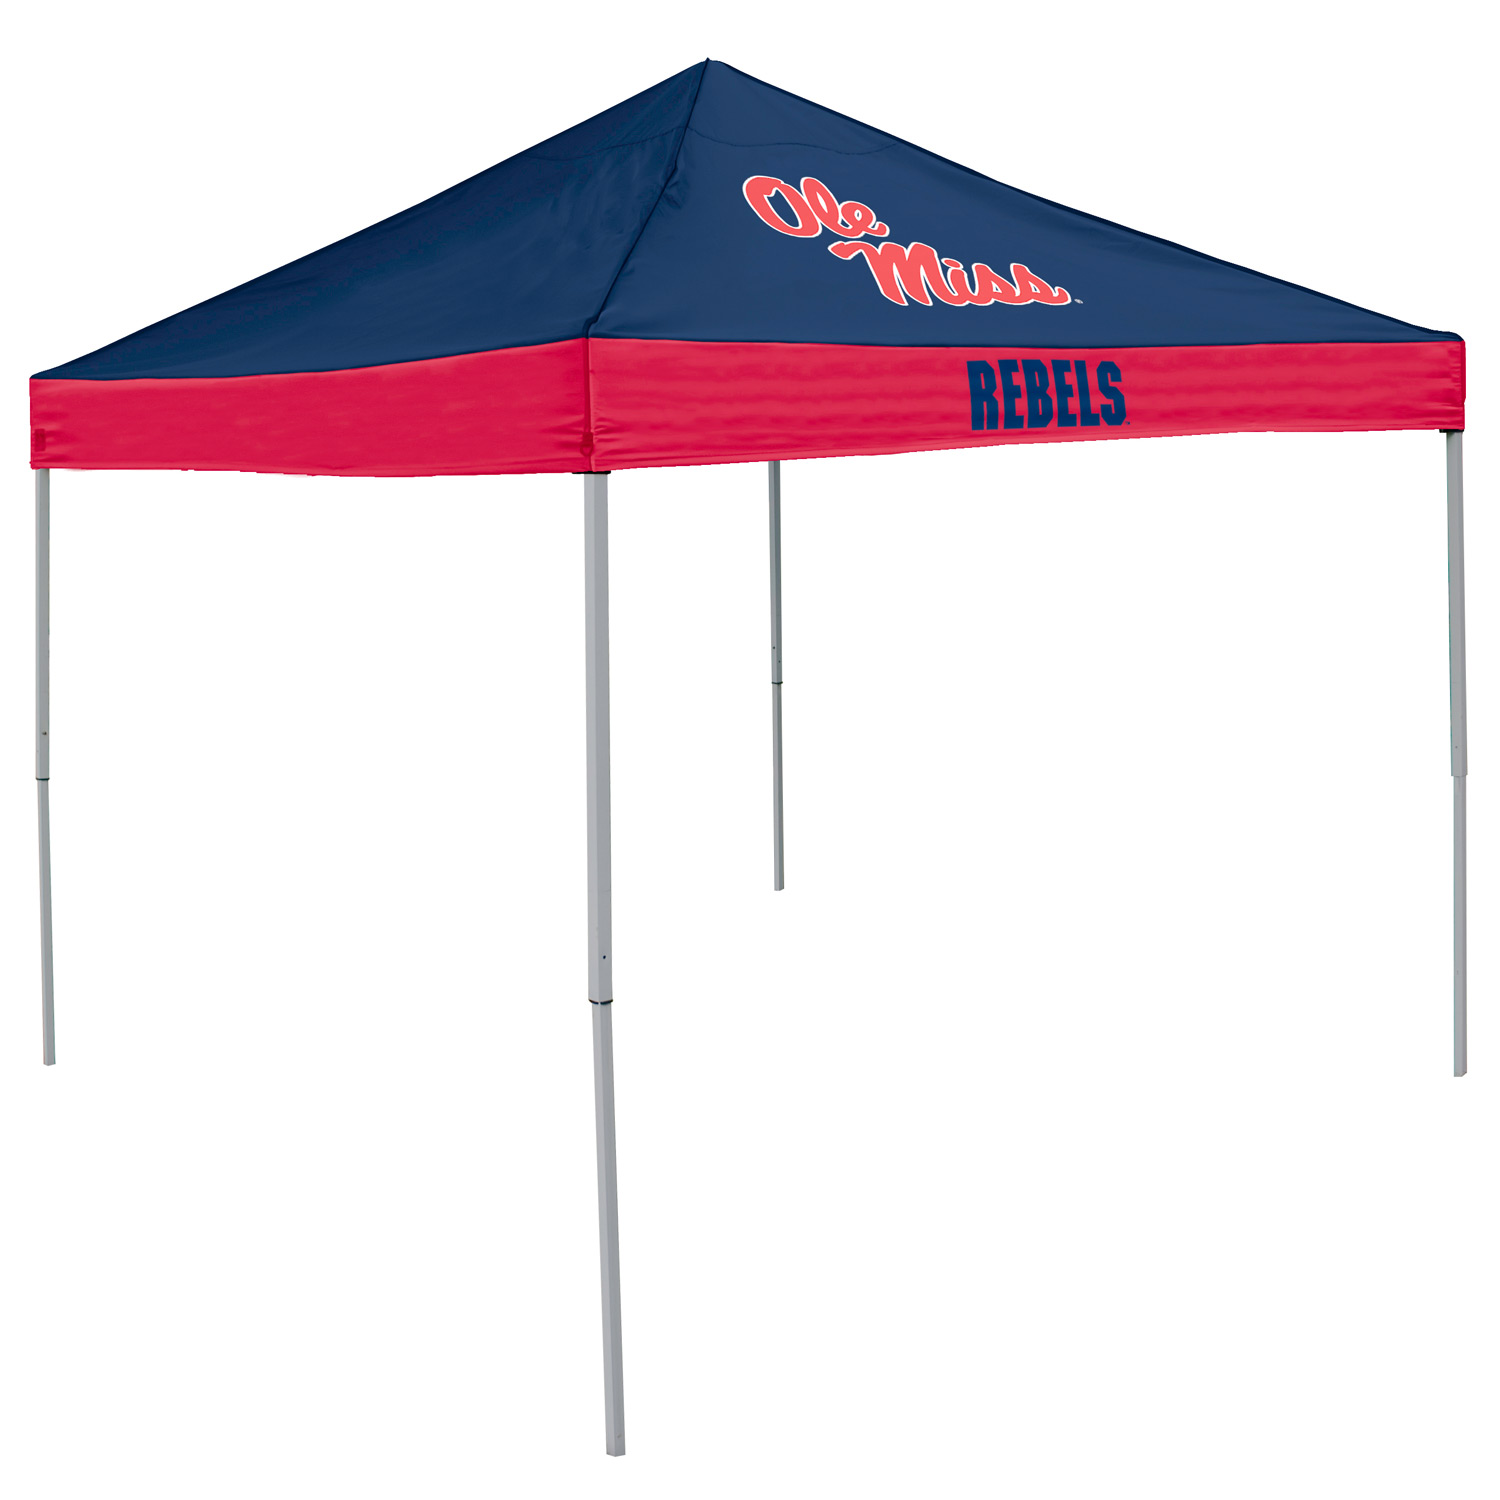 Ole Miss Rebels Economy Tent - Image 1